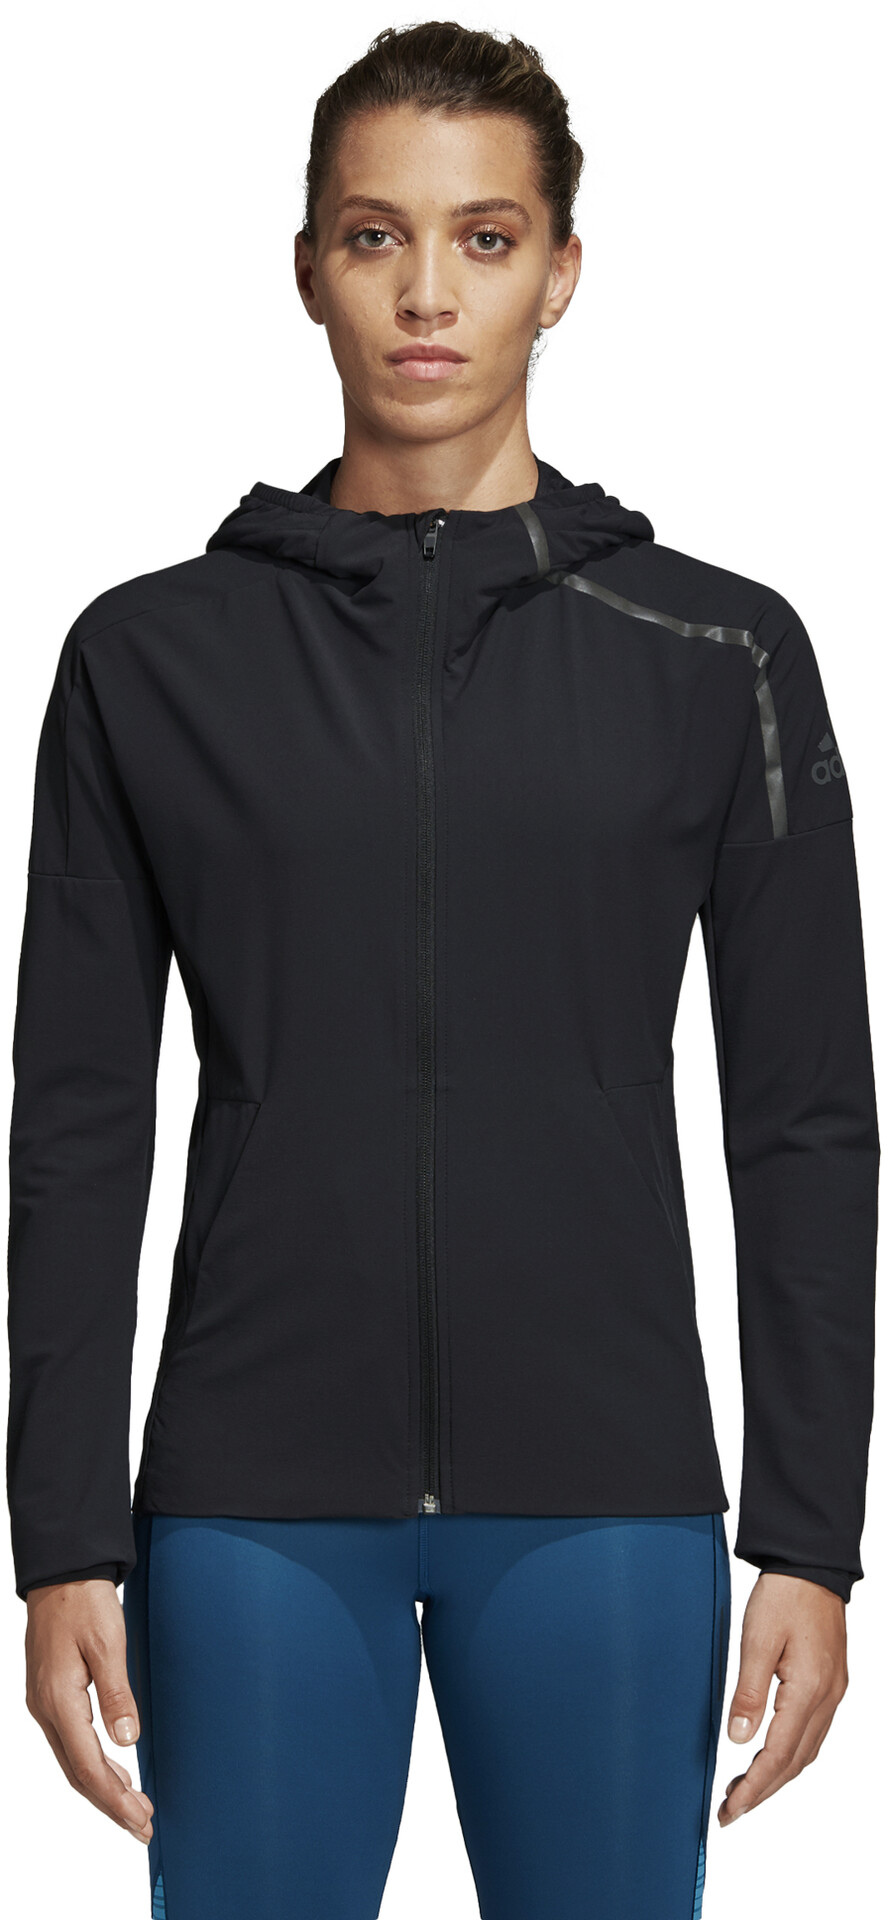 adidas Z.N.E. Jacket Women black